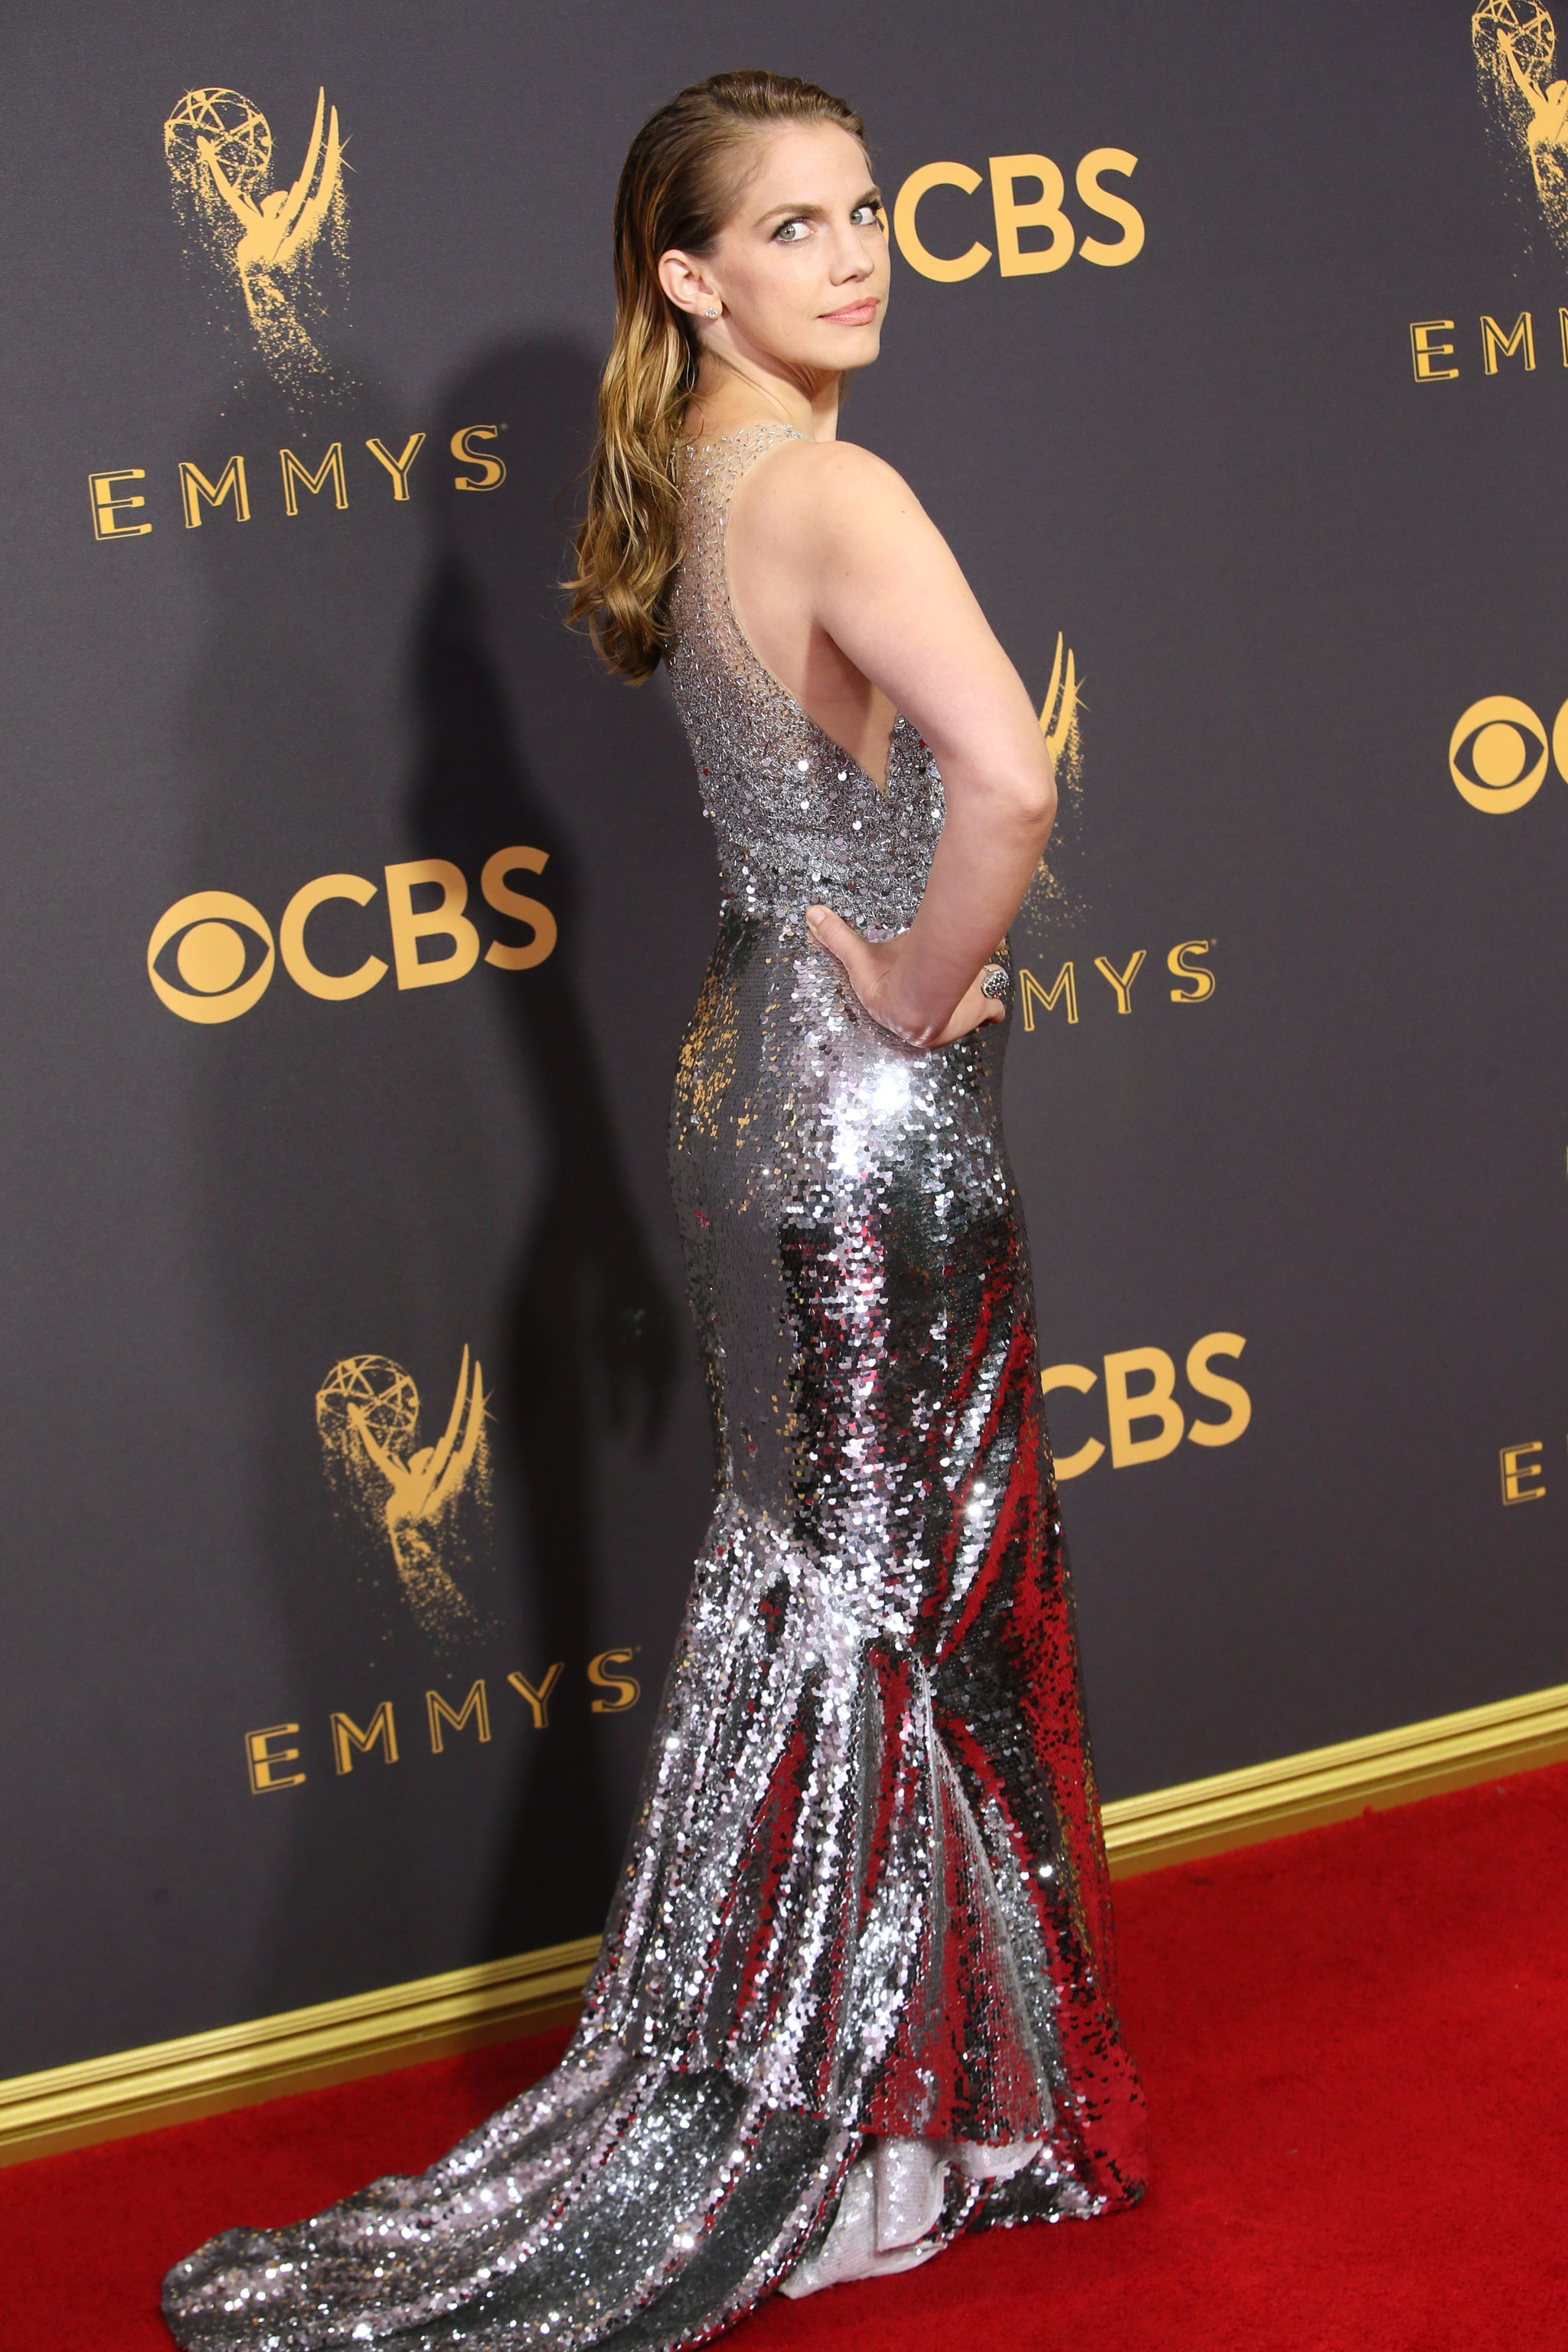 Anna Chlumsky The Emmys Red Carpet Was Straight Up Sexy As Hell